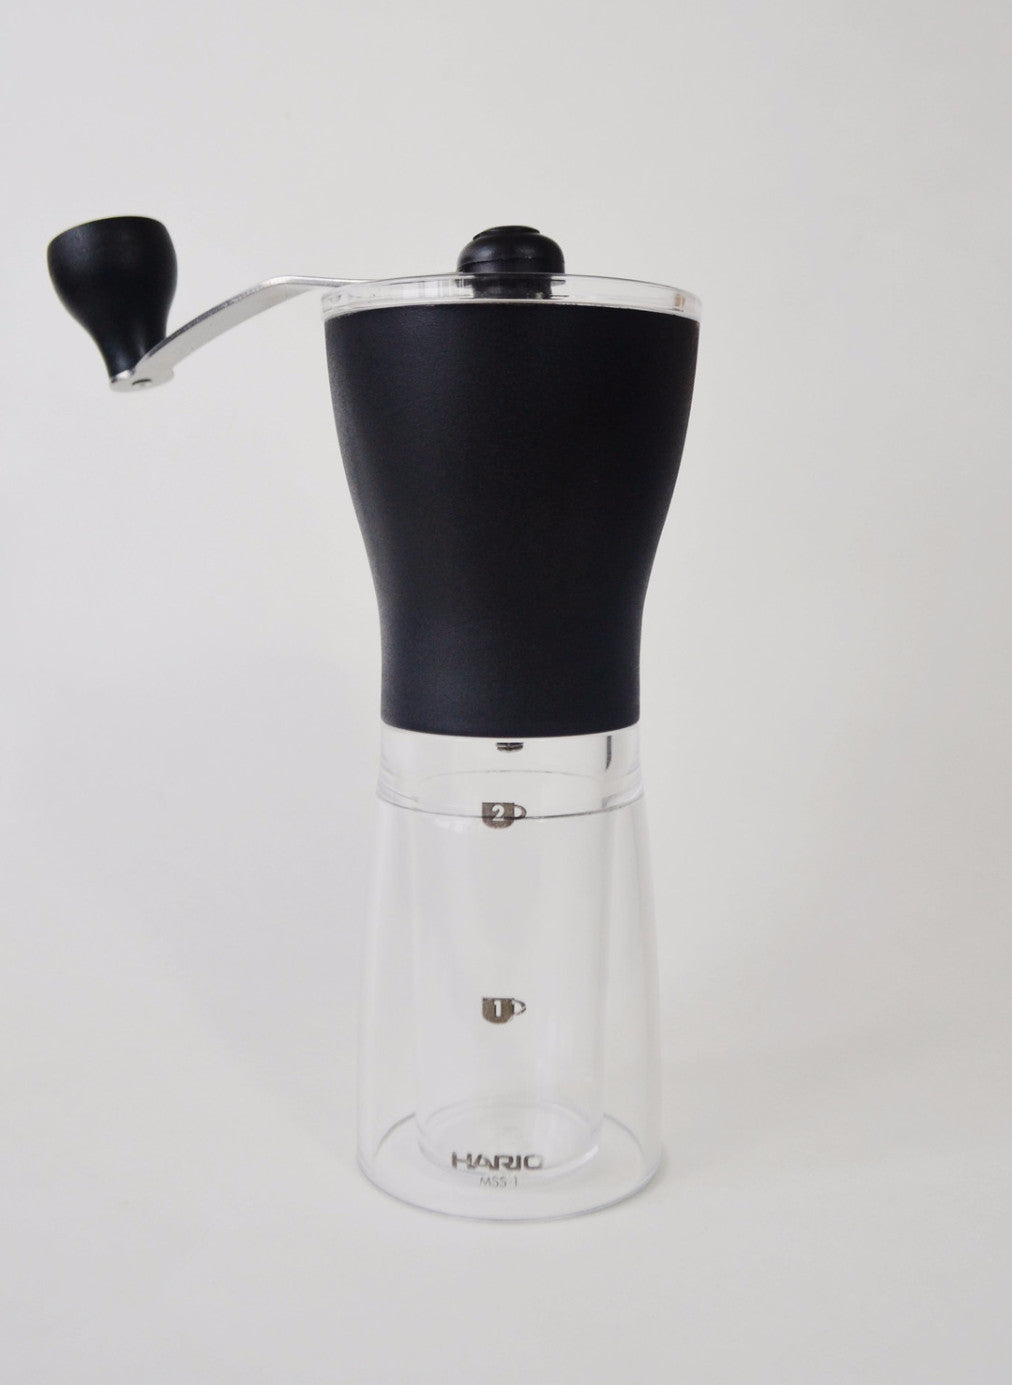 Hario Mini Coffee Grinder